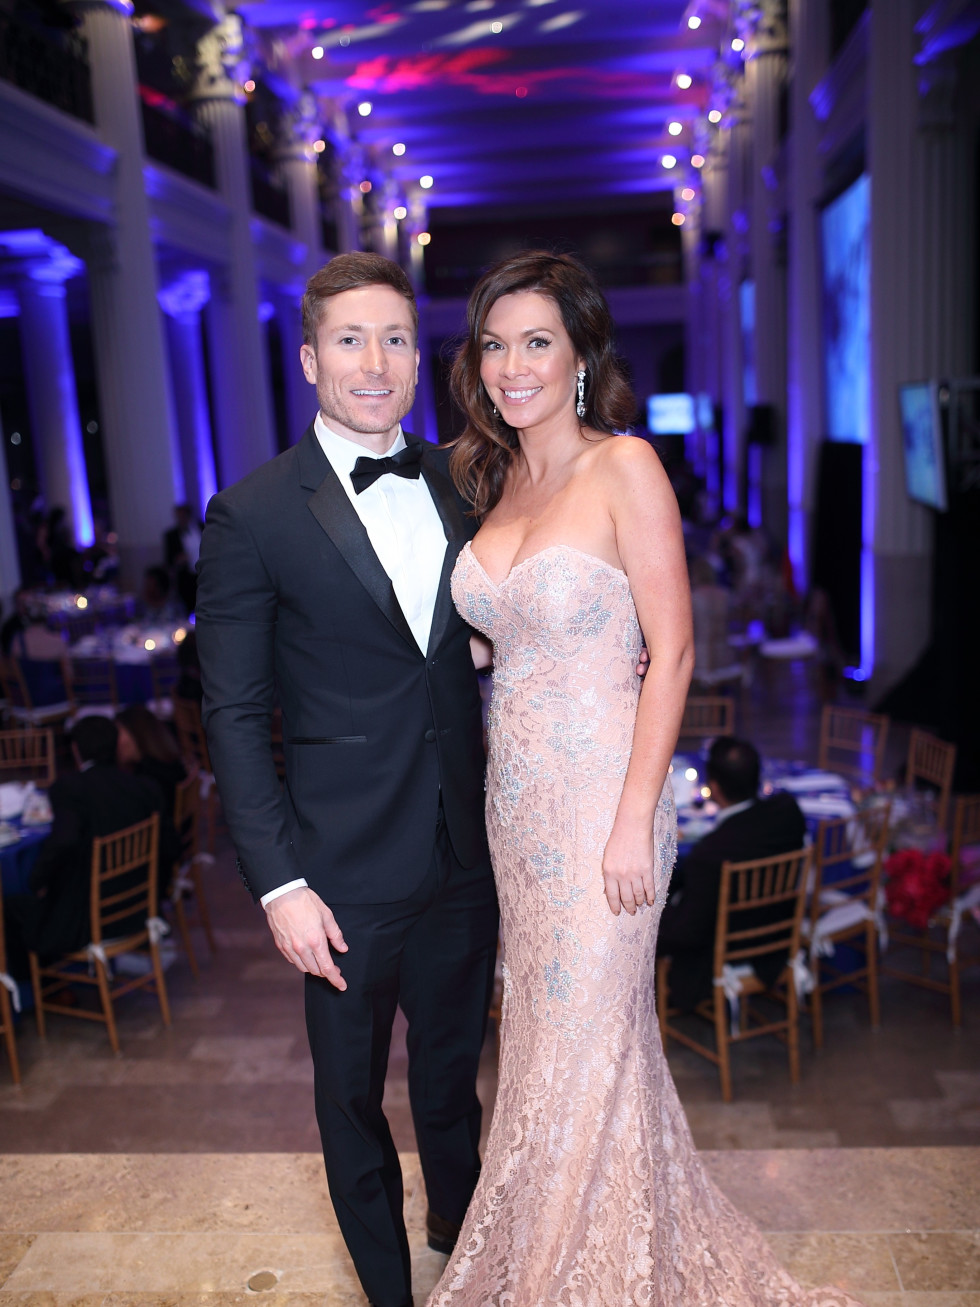 Shaun Lynch, Jentry Kelly at Denali Gala